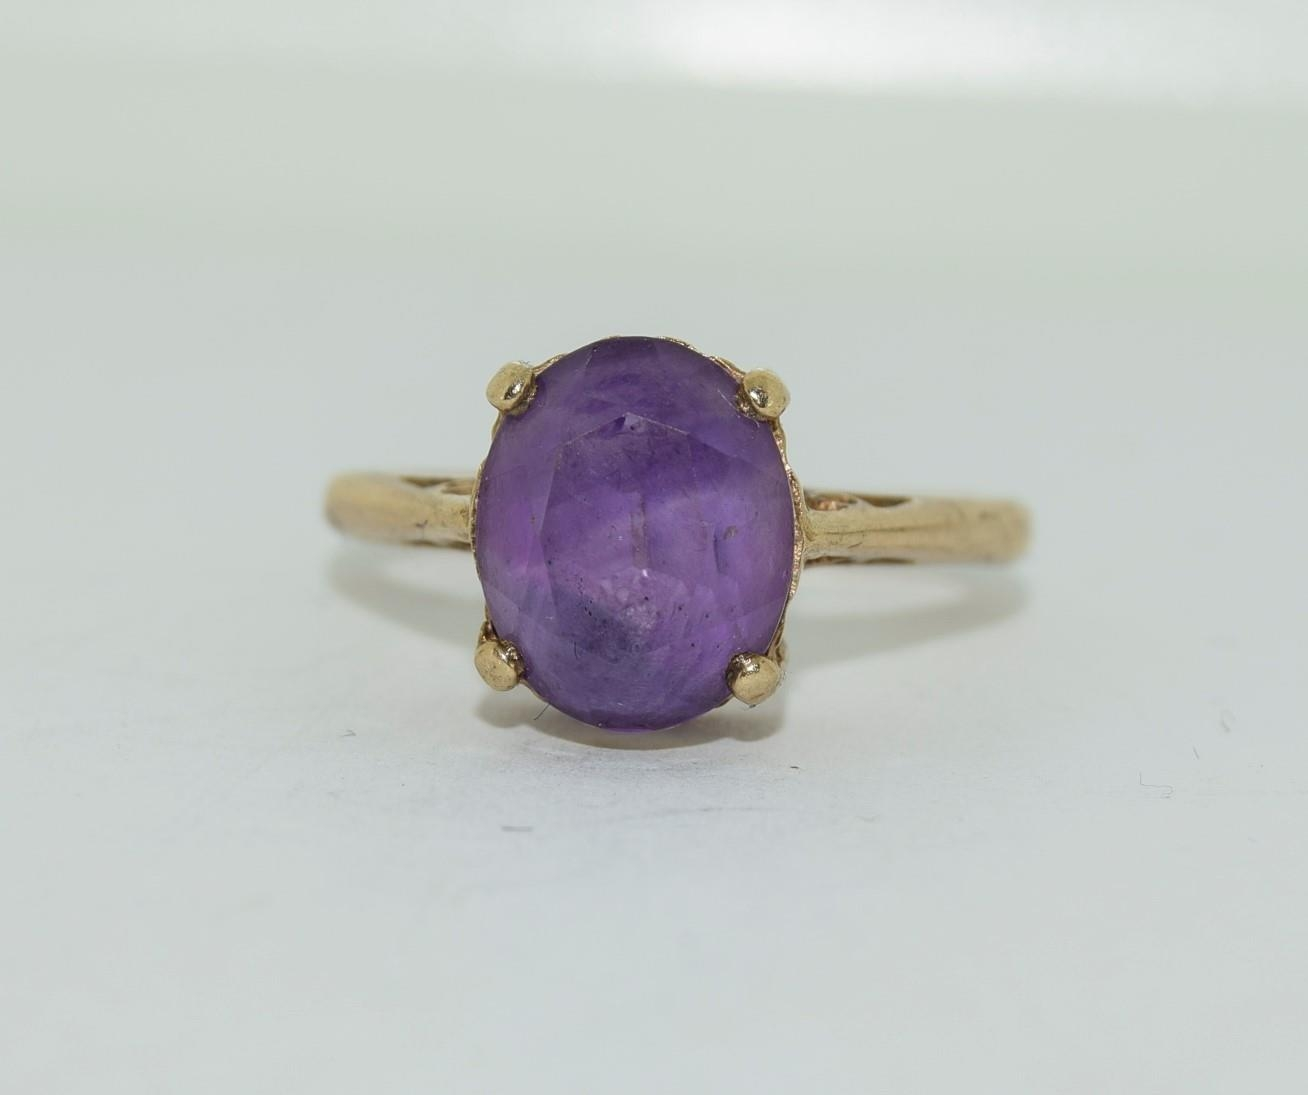 9ct gold ladies Amethyst ring size N - Image 11 of 12